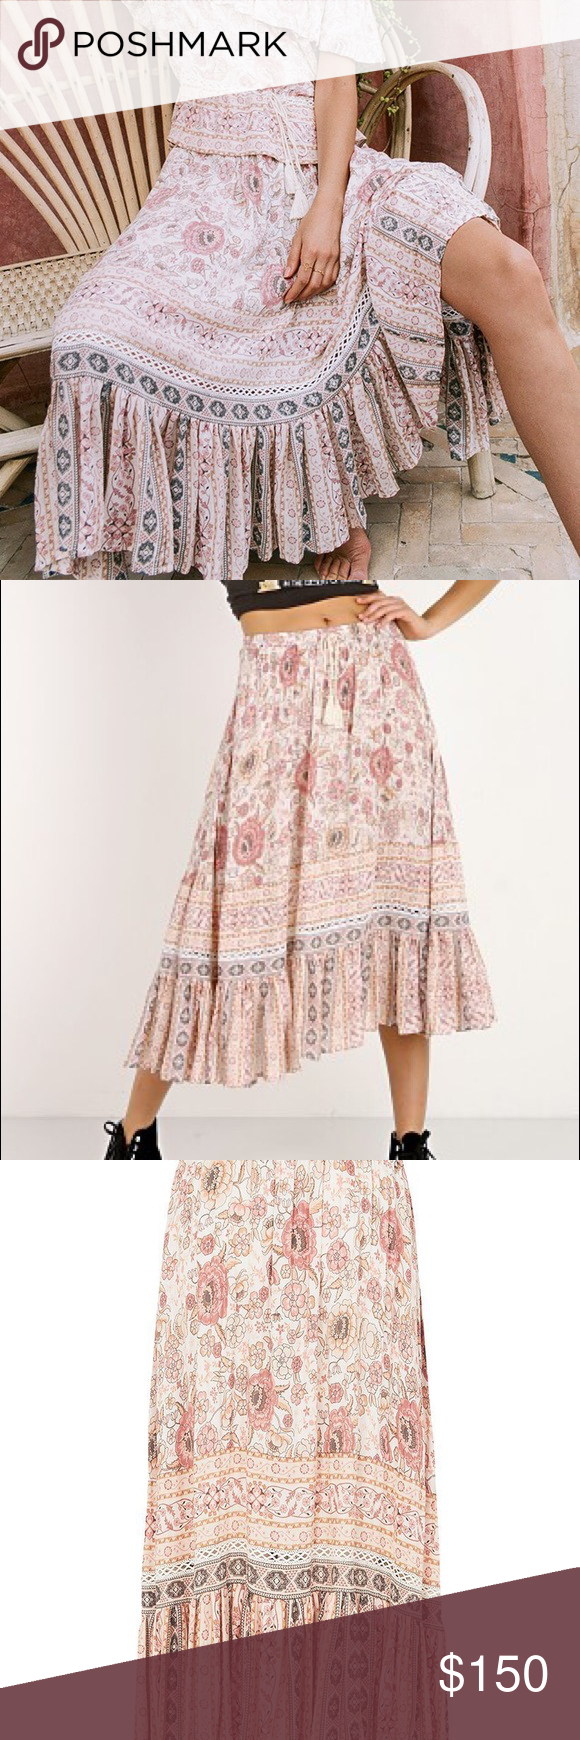 0a7e665d0 Spell Gypsy Zahara Midi Skirt Rosewater Small NWT Brand new with tags. Will  consider Spell trades... Spell & The Gypsy Collective Skirts Midi